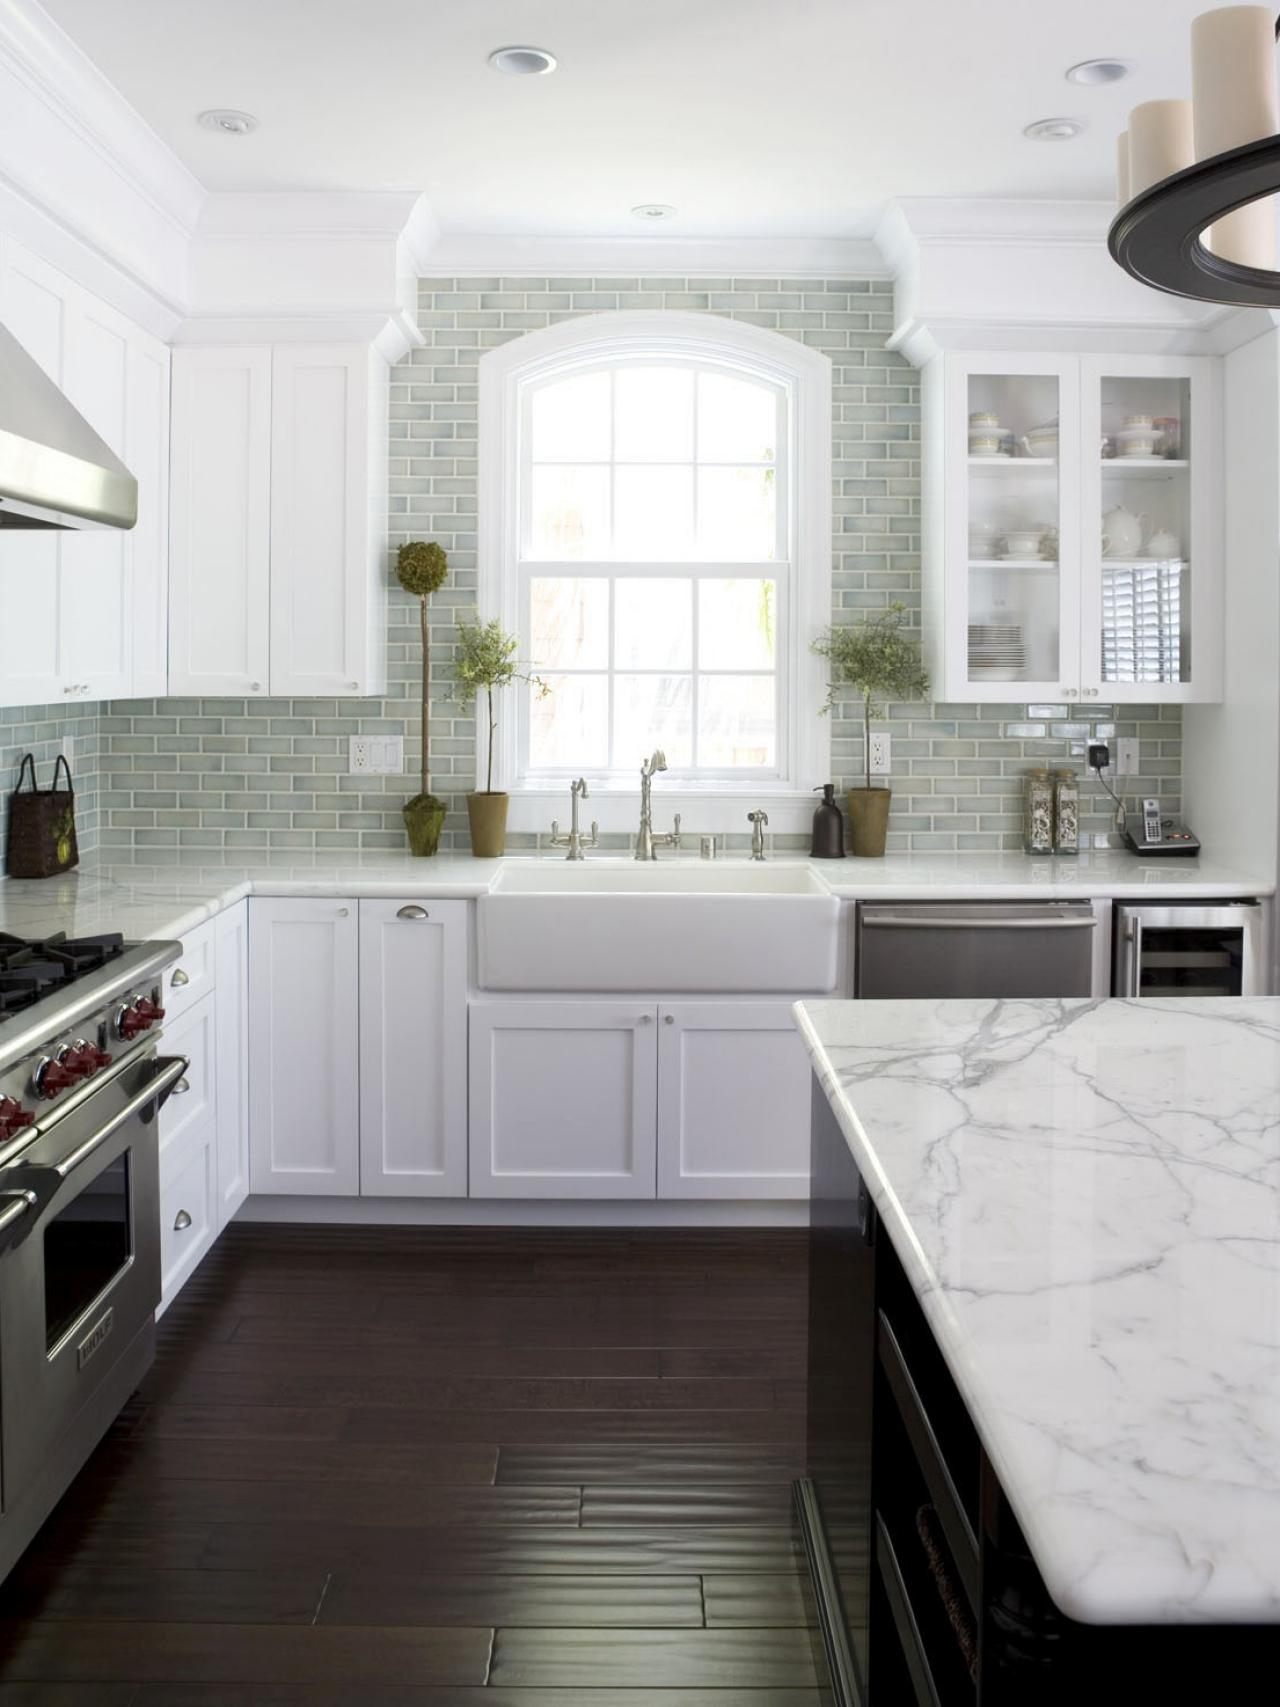 white kitchen | home design ideas